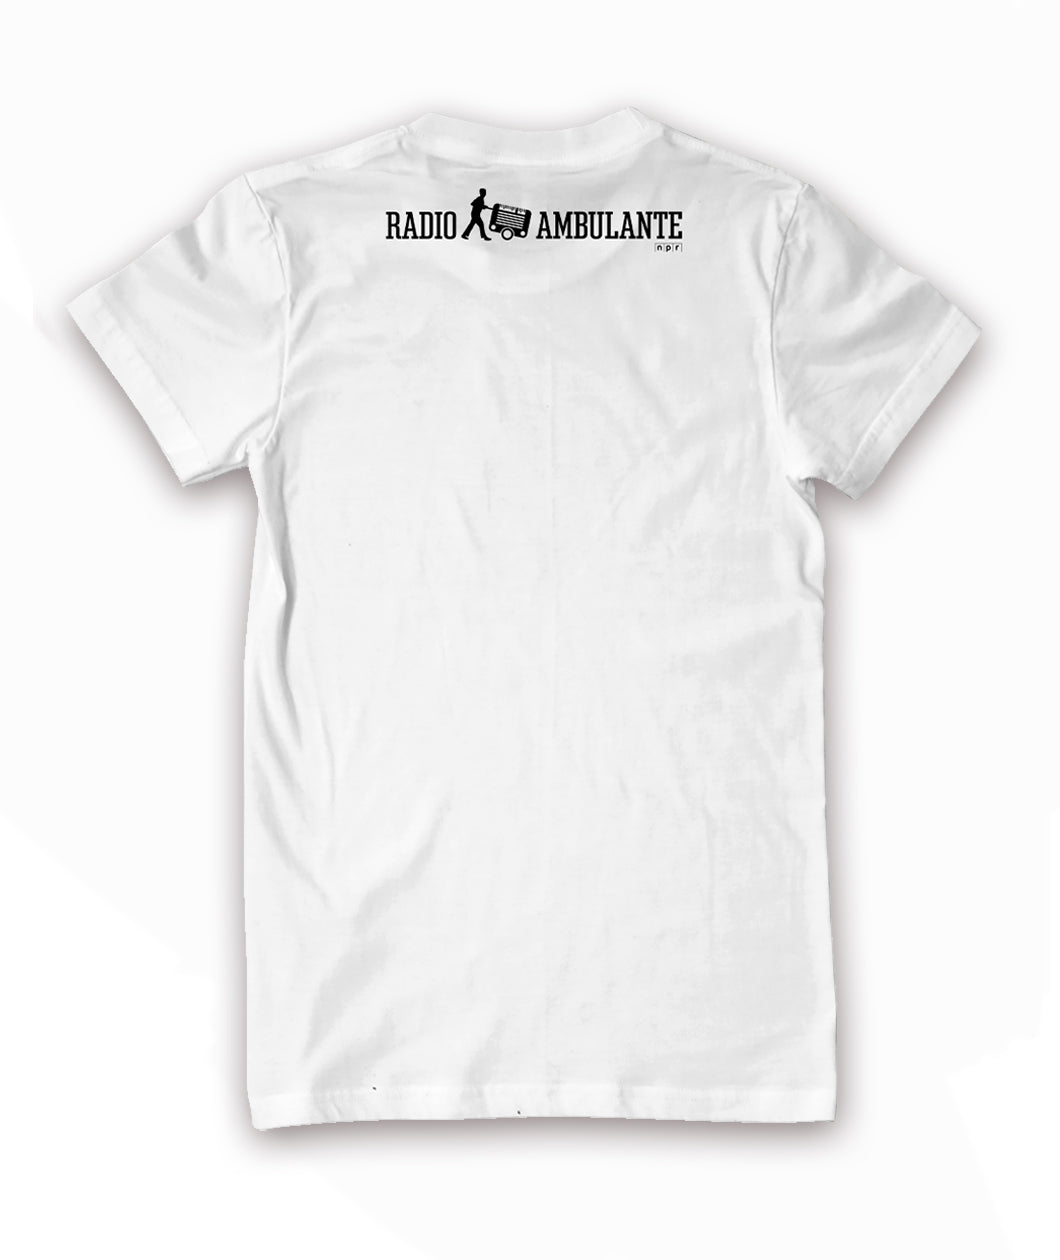 Fiesta Radio Ambulante Shirt